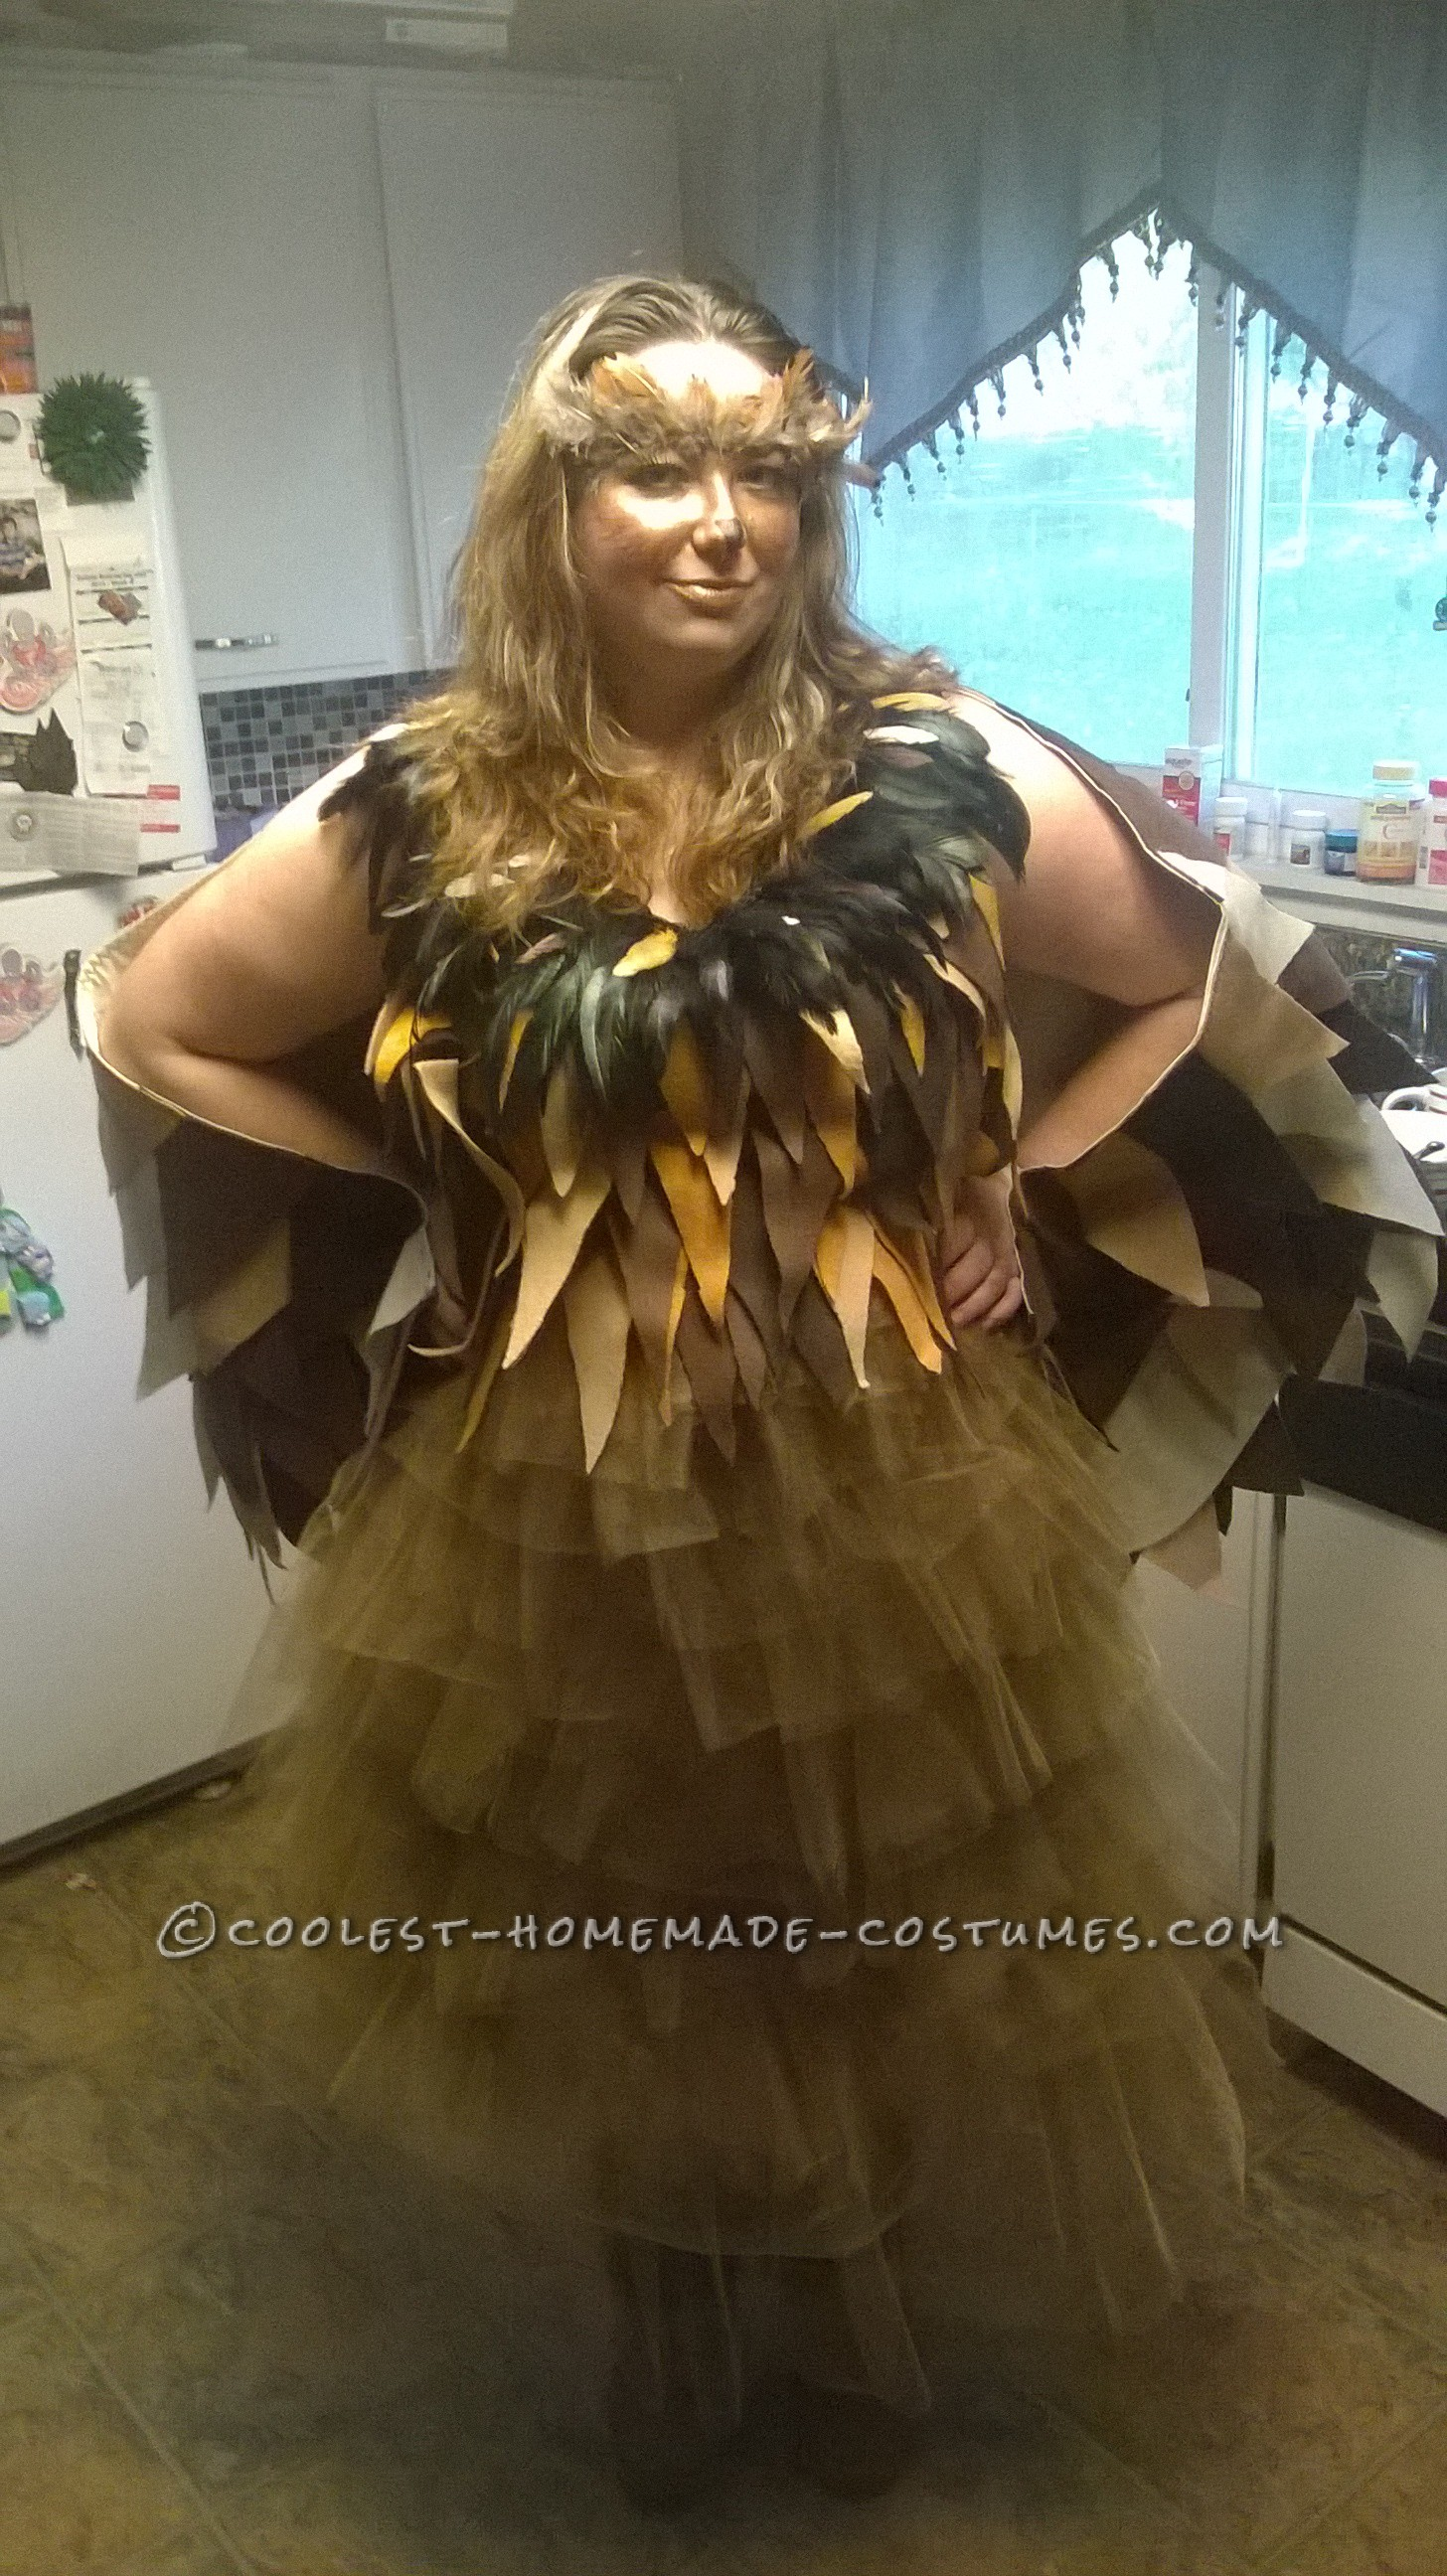 Homemade Whimiscal Owl Costume for a Woman